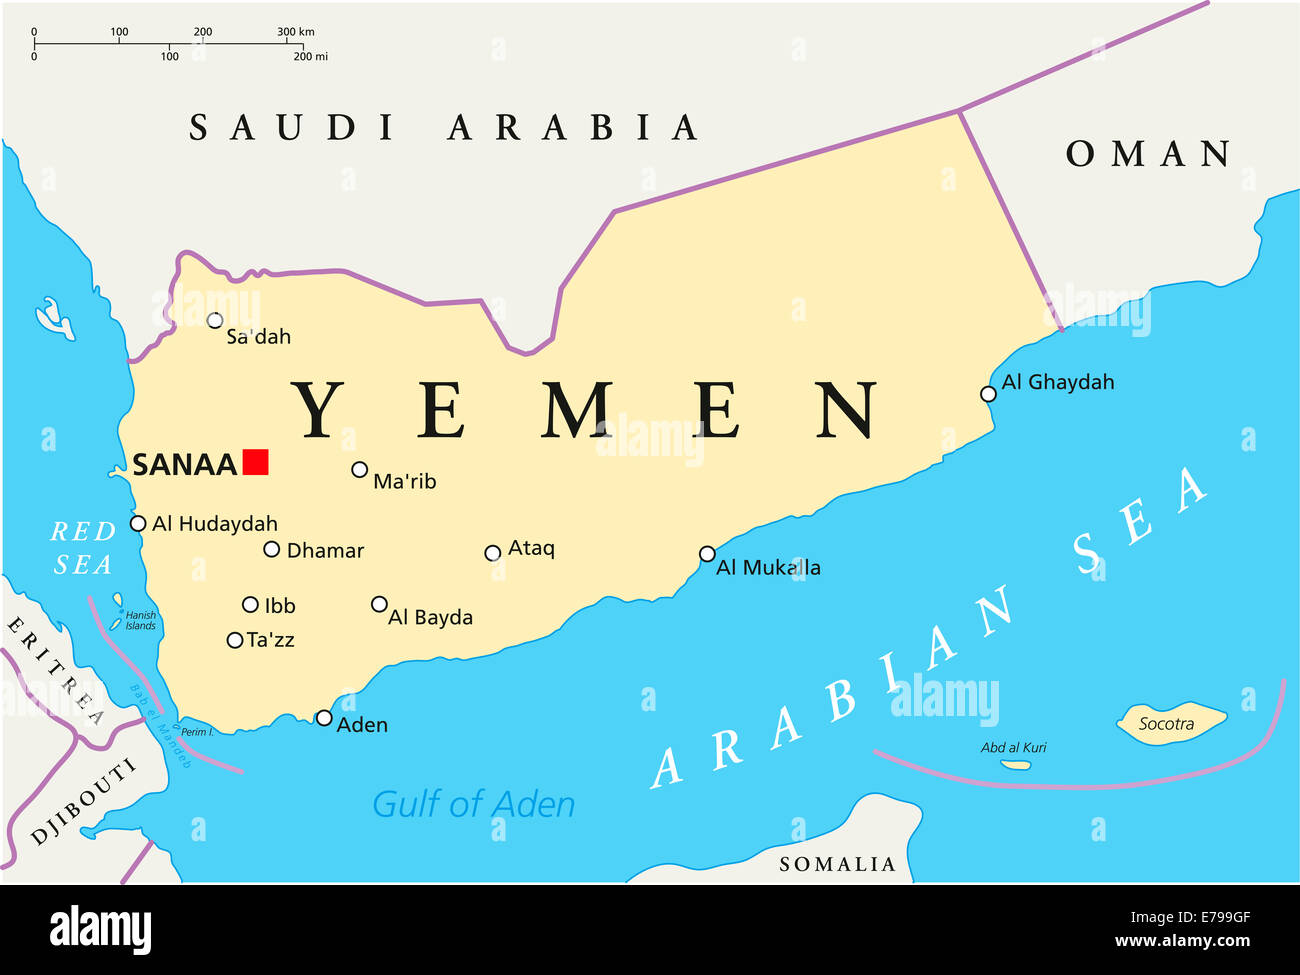 Yemen Political Map with capital Sanaa, national borders and most important cities. English labeling and scaling. - Stock Image